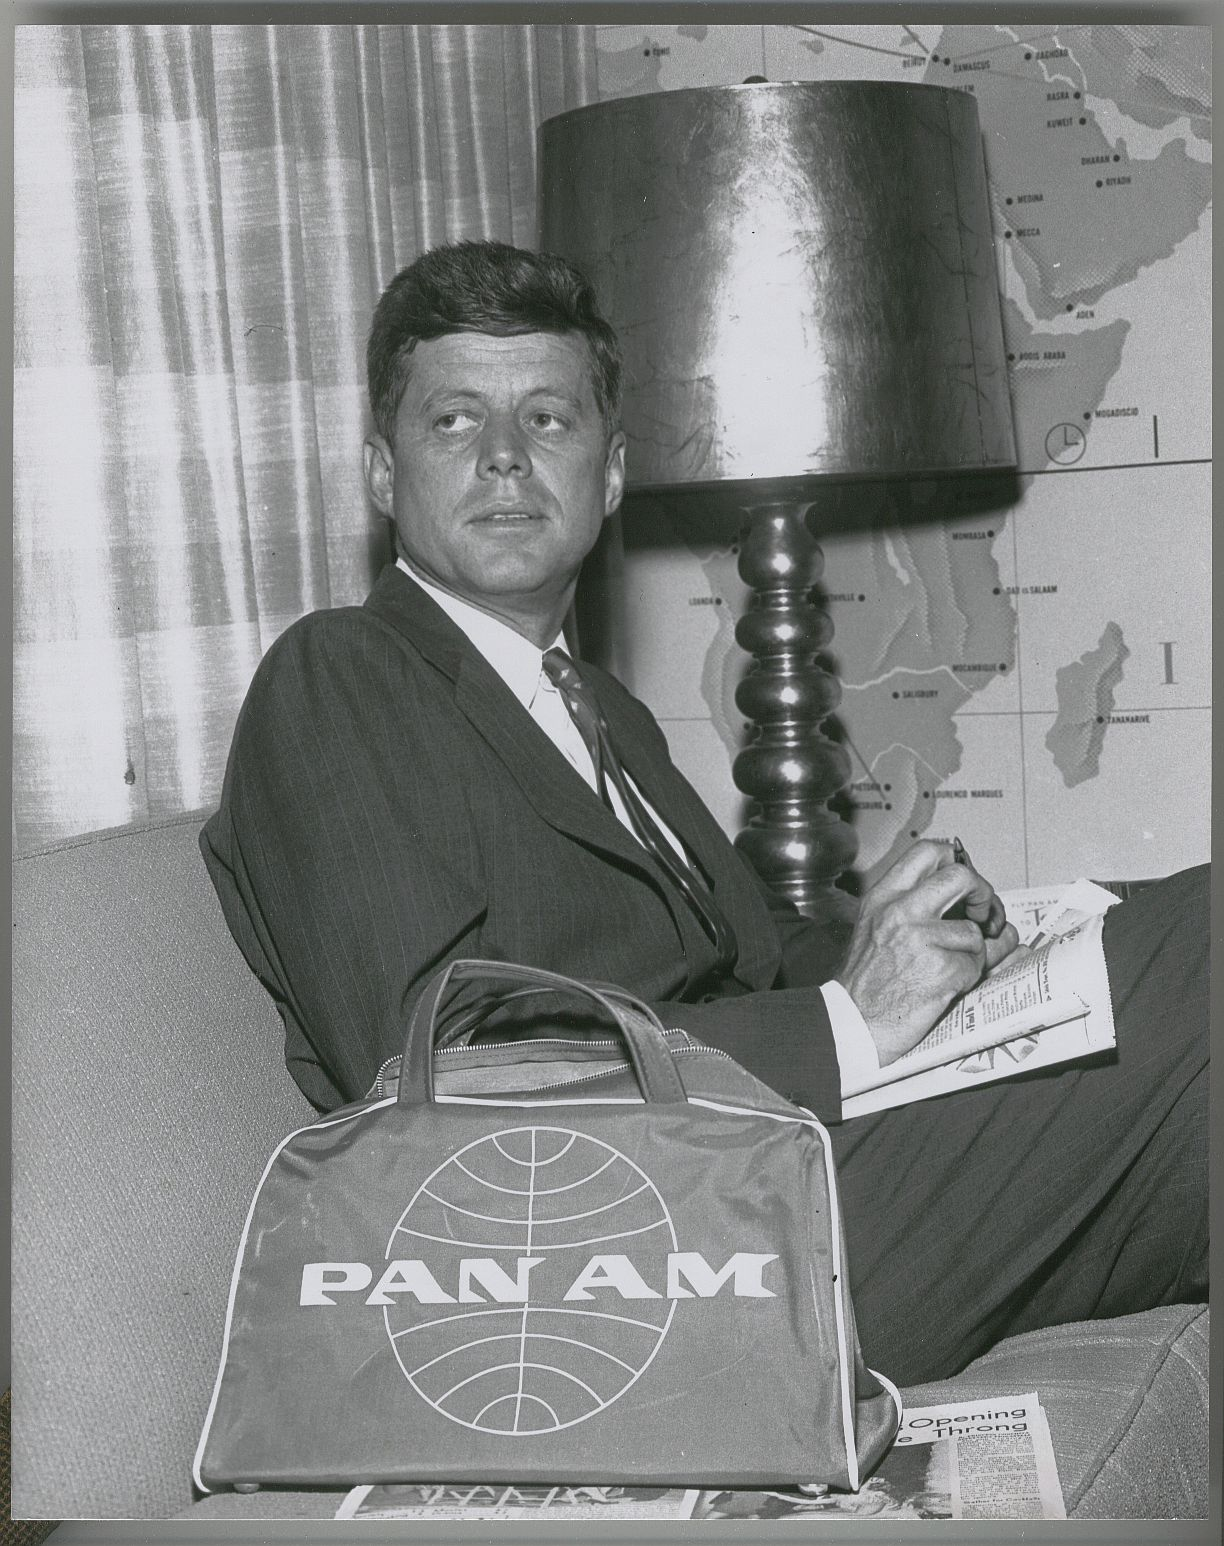 1959 Senator John F. Kennedy relaxes in a Pan Am Clipper Club prior to his flight.